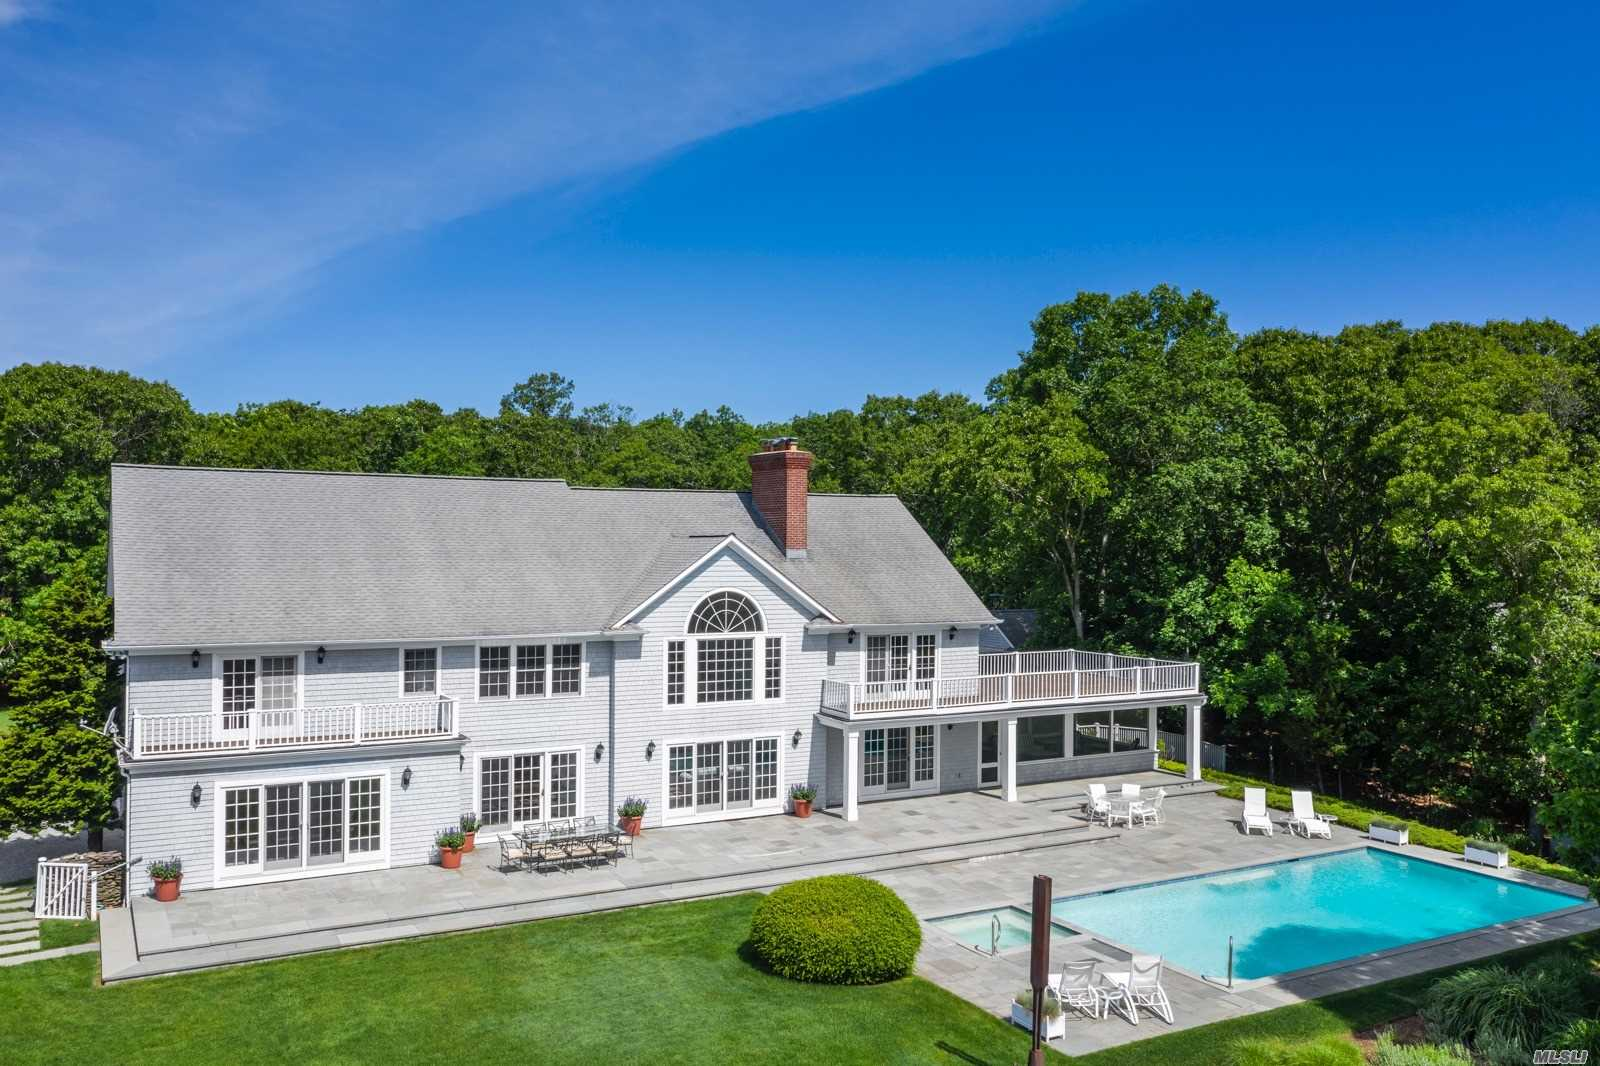 70, 72, 74 3 Mile Harbor Dr, East Hampton, New York